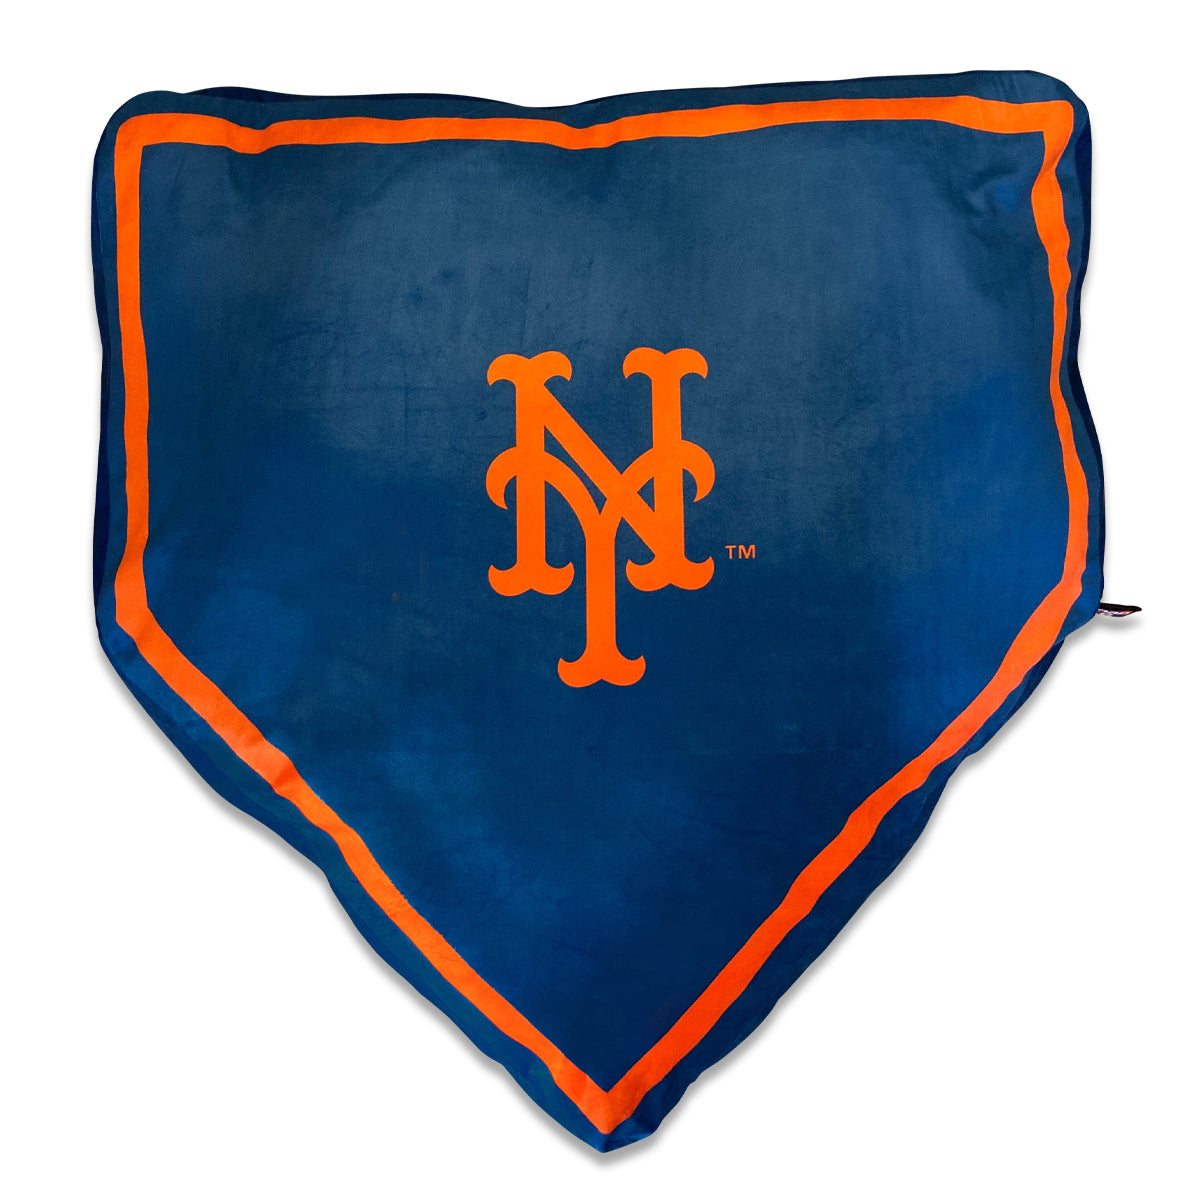 New York Mets Home Plate Bed by Nap Cap